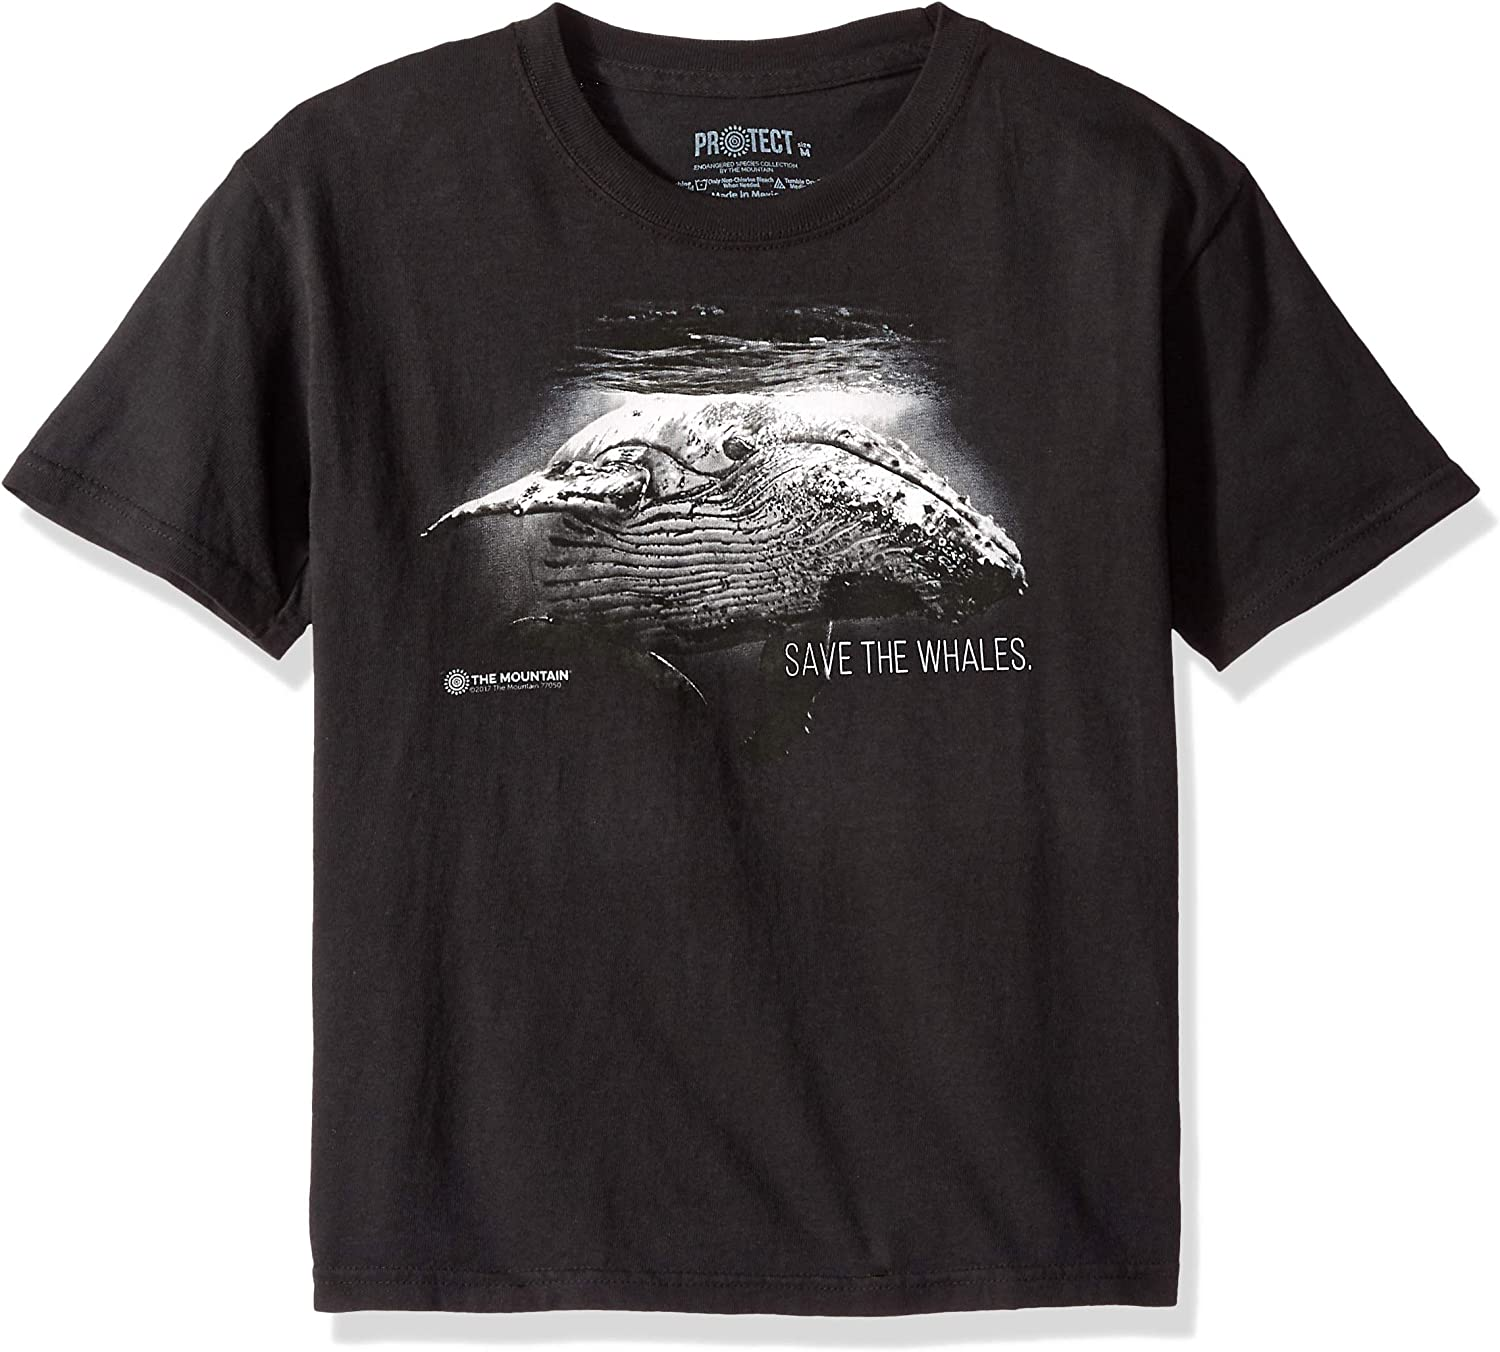 The Mountain Big Wildlife Protection, Save The Whales Kid's T-Shirt